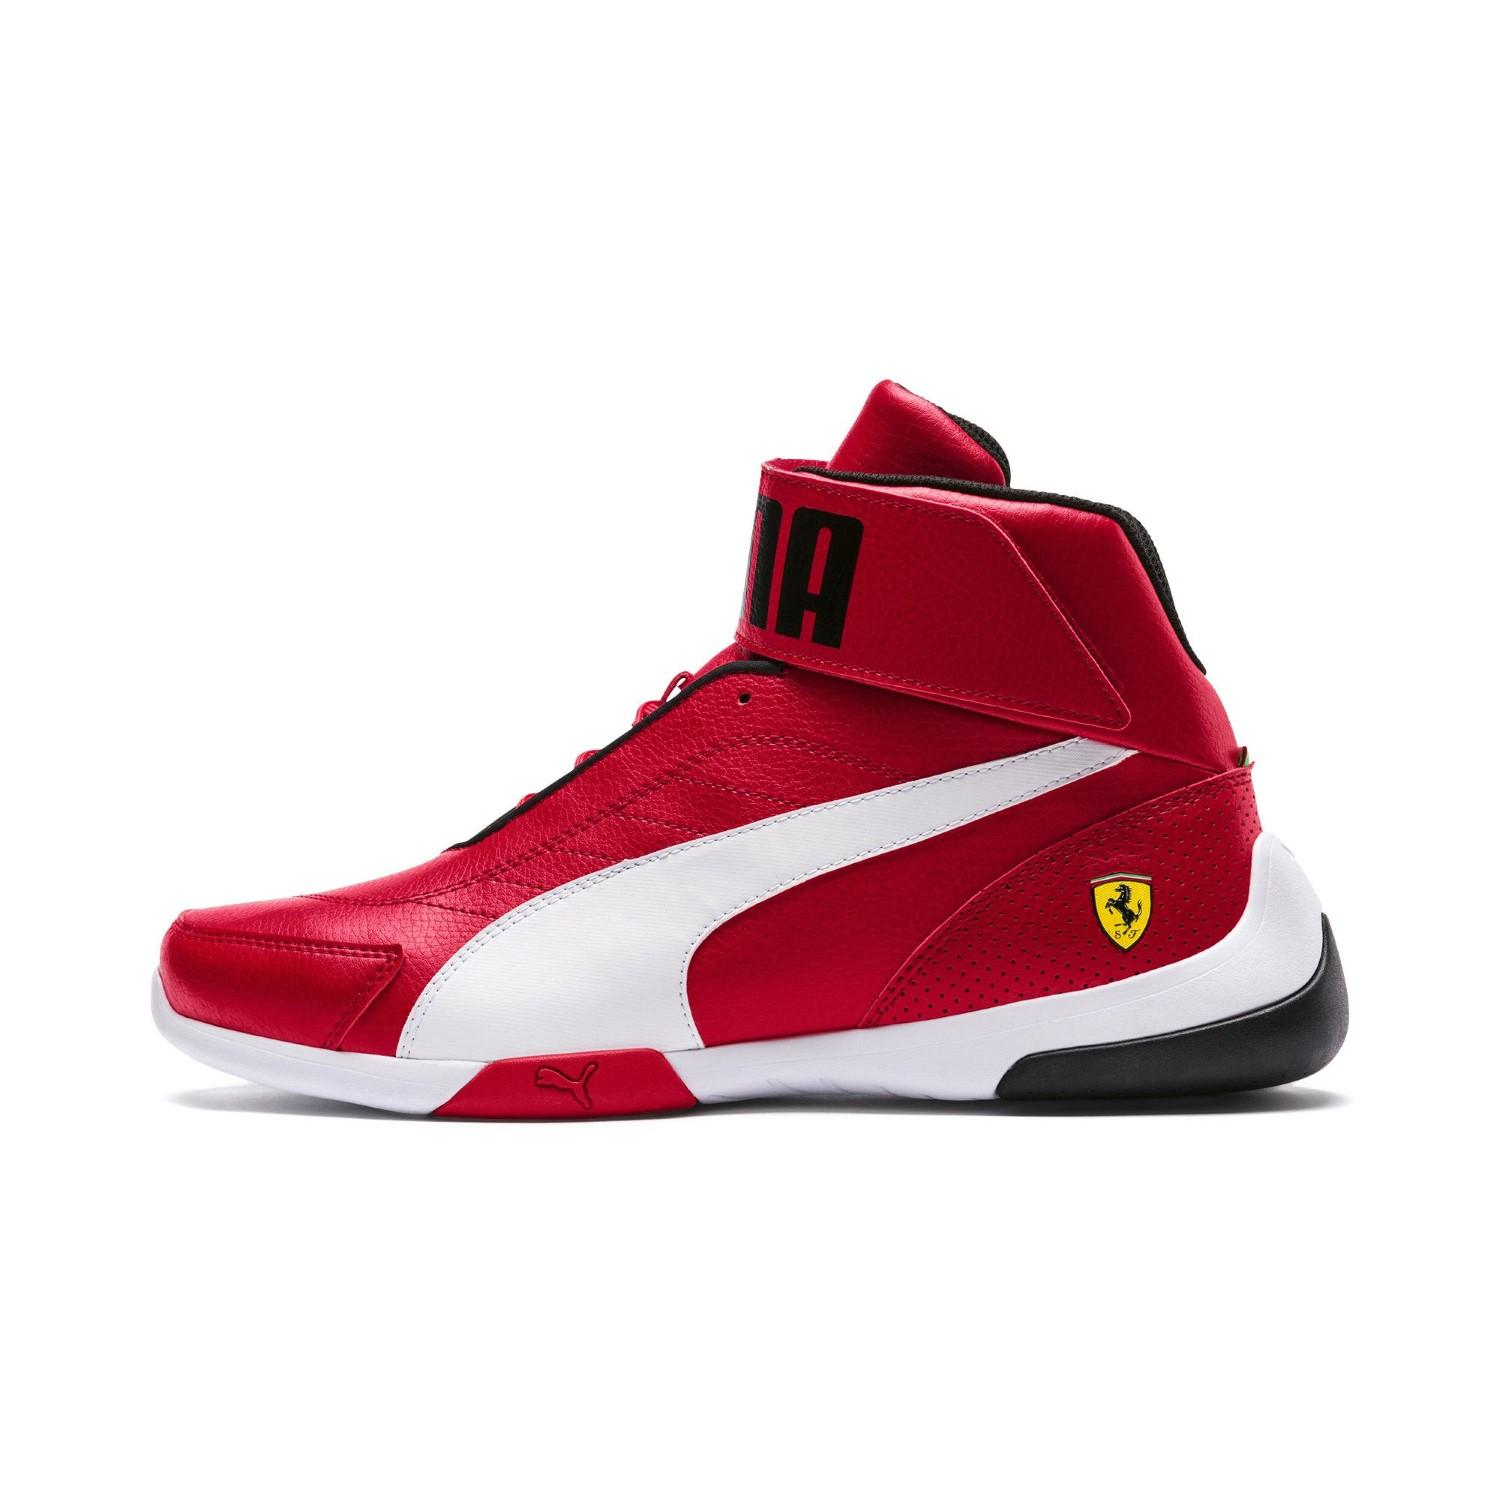 Lyst - PUMA Ferrari Kart Cat Mid Iii High Tops in Red for Men 054fff112